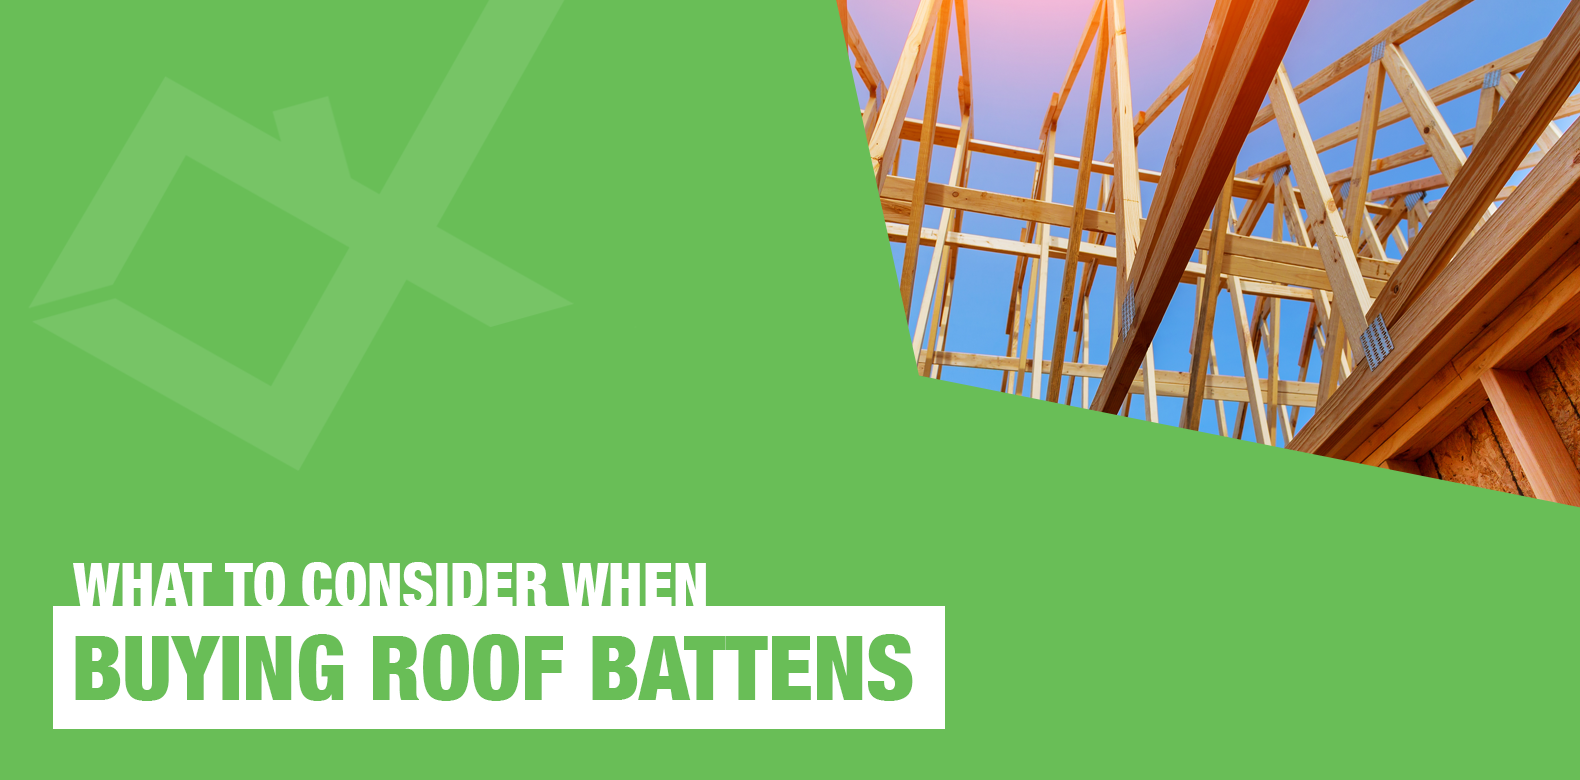 Roof Battens: What You Need to Consider